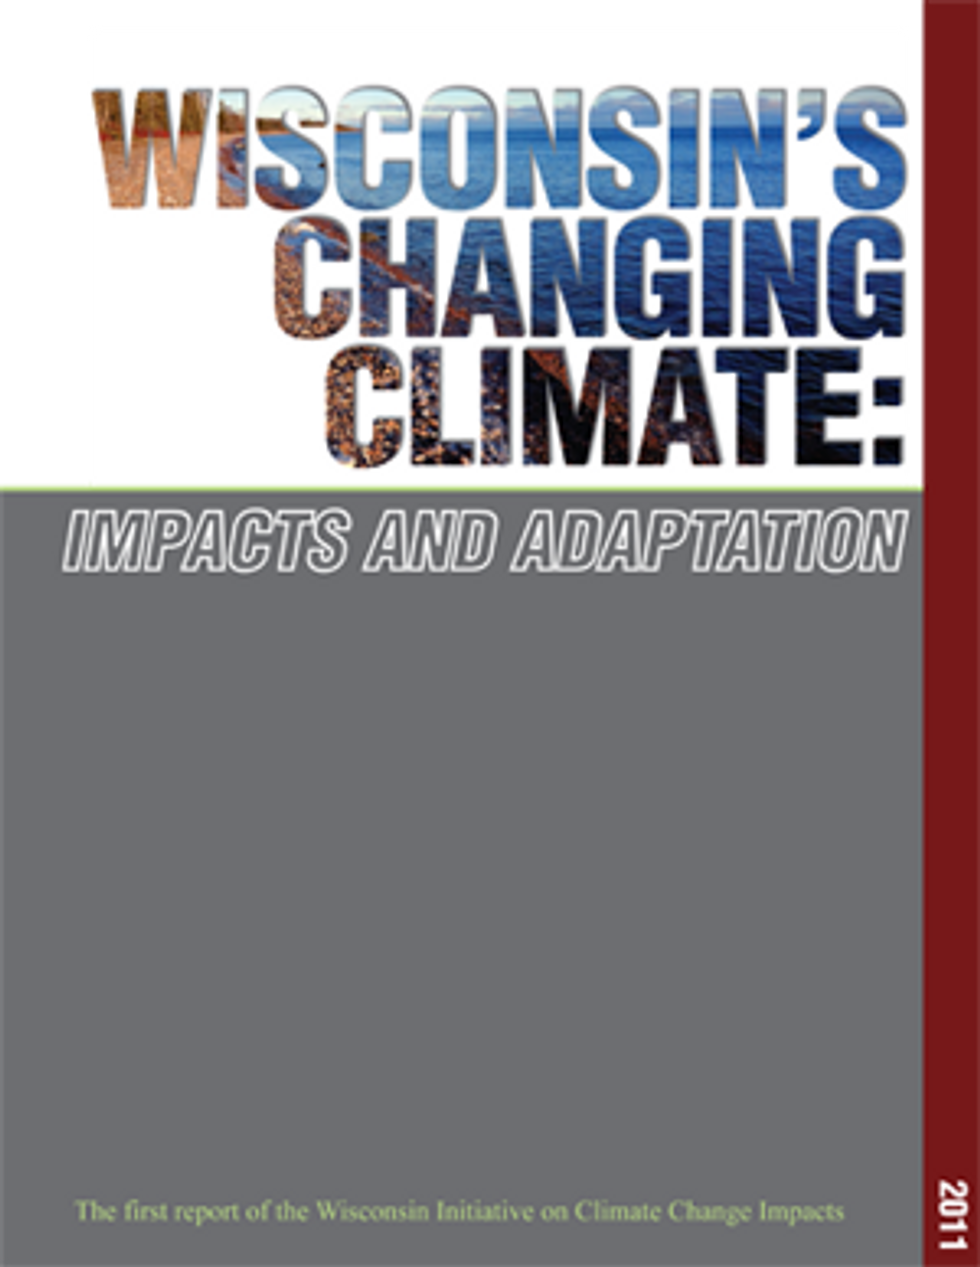 Climate Wisconsin: Video Storytelling About a State of Change